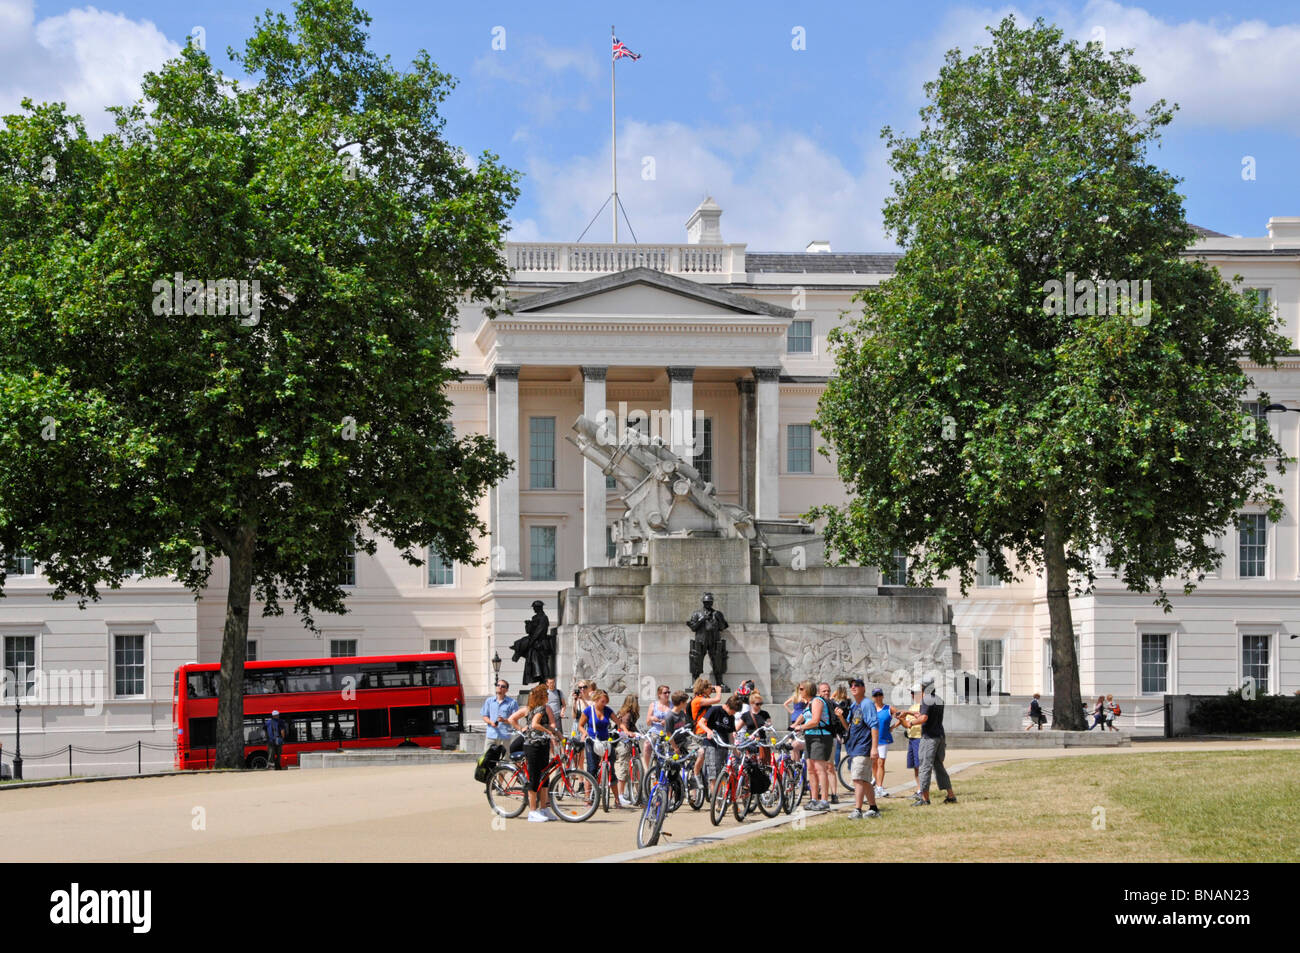 Cycle tour group and the The Royal Artillery Memorial with Lanesborough Hotel beyond - Stock Image